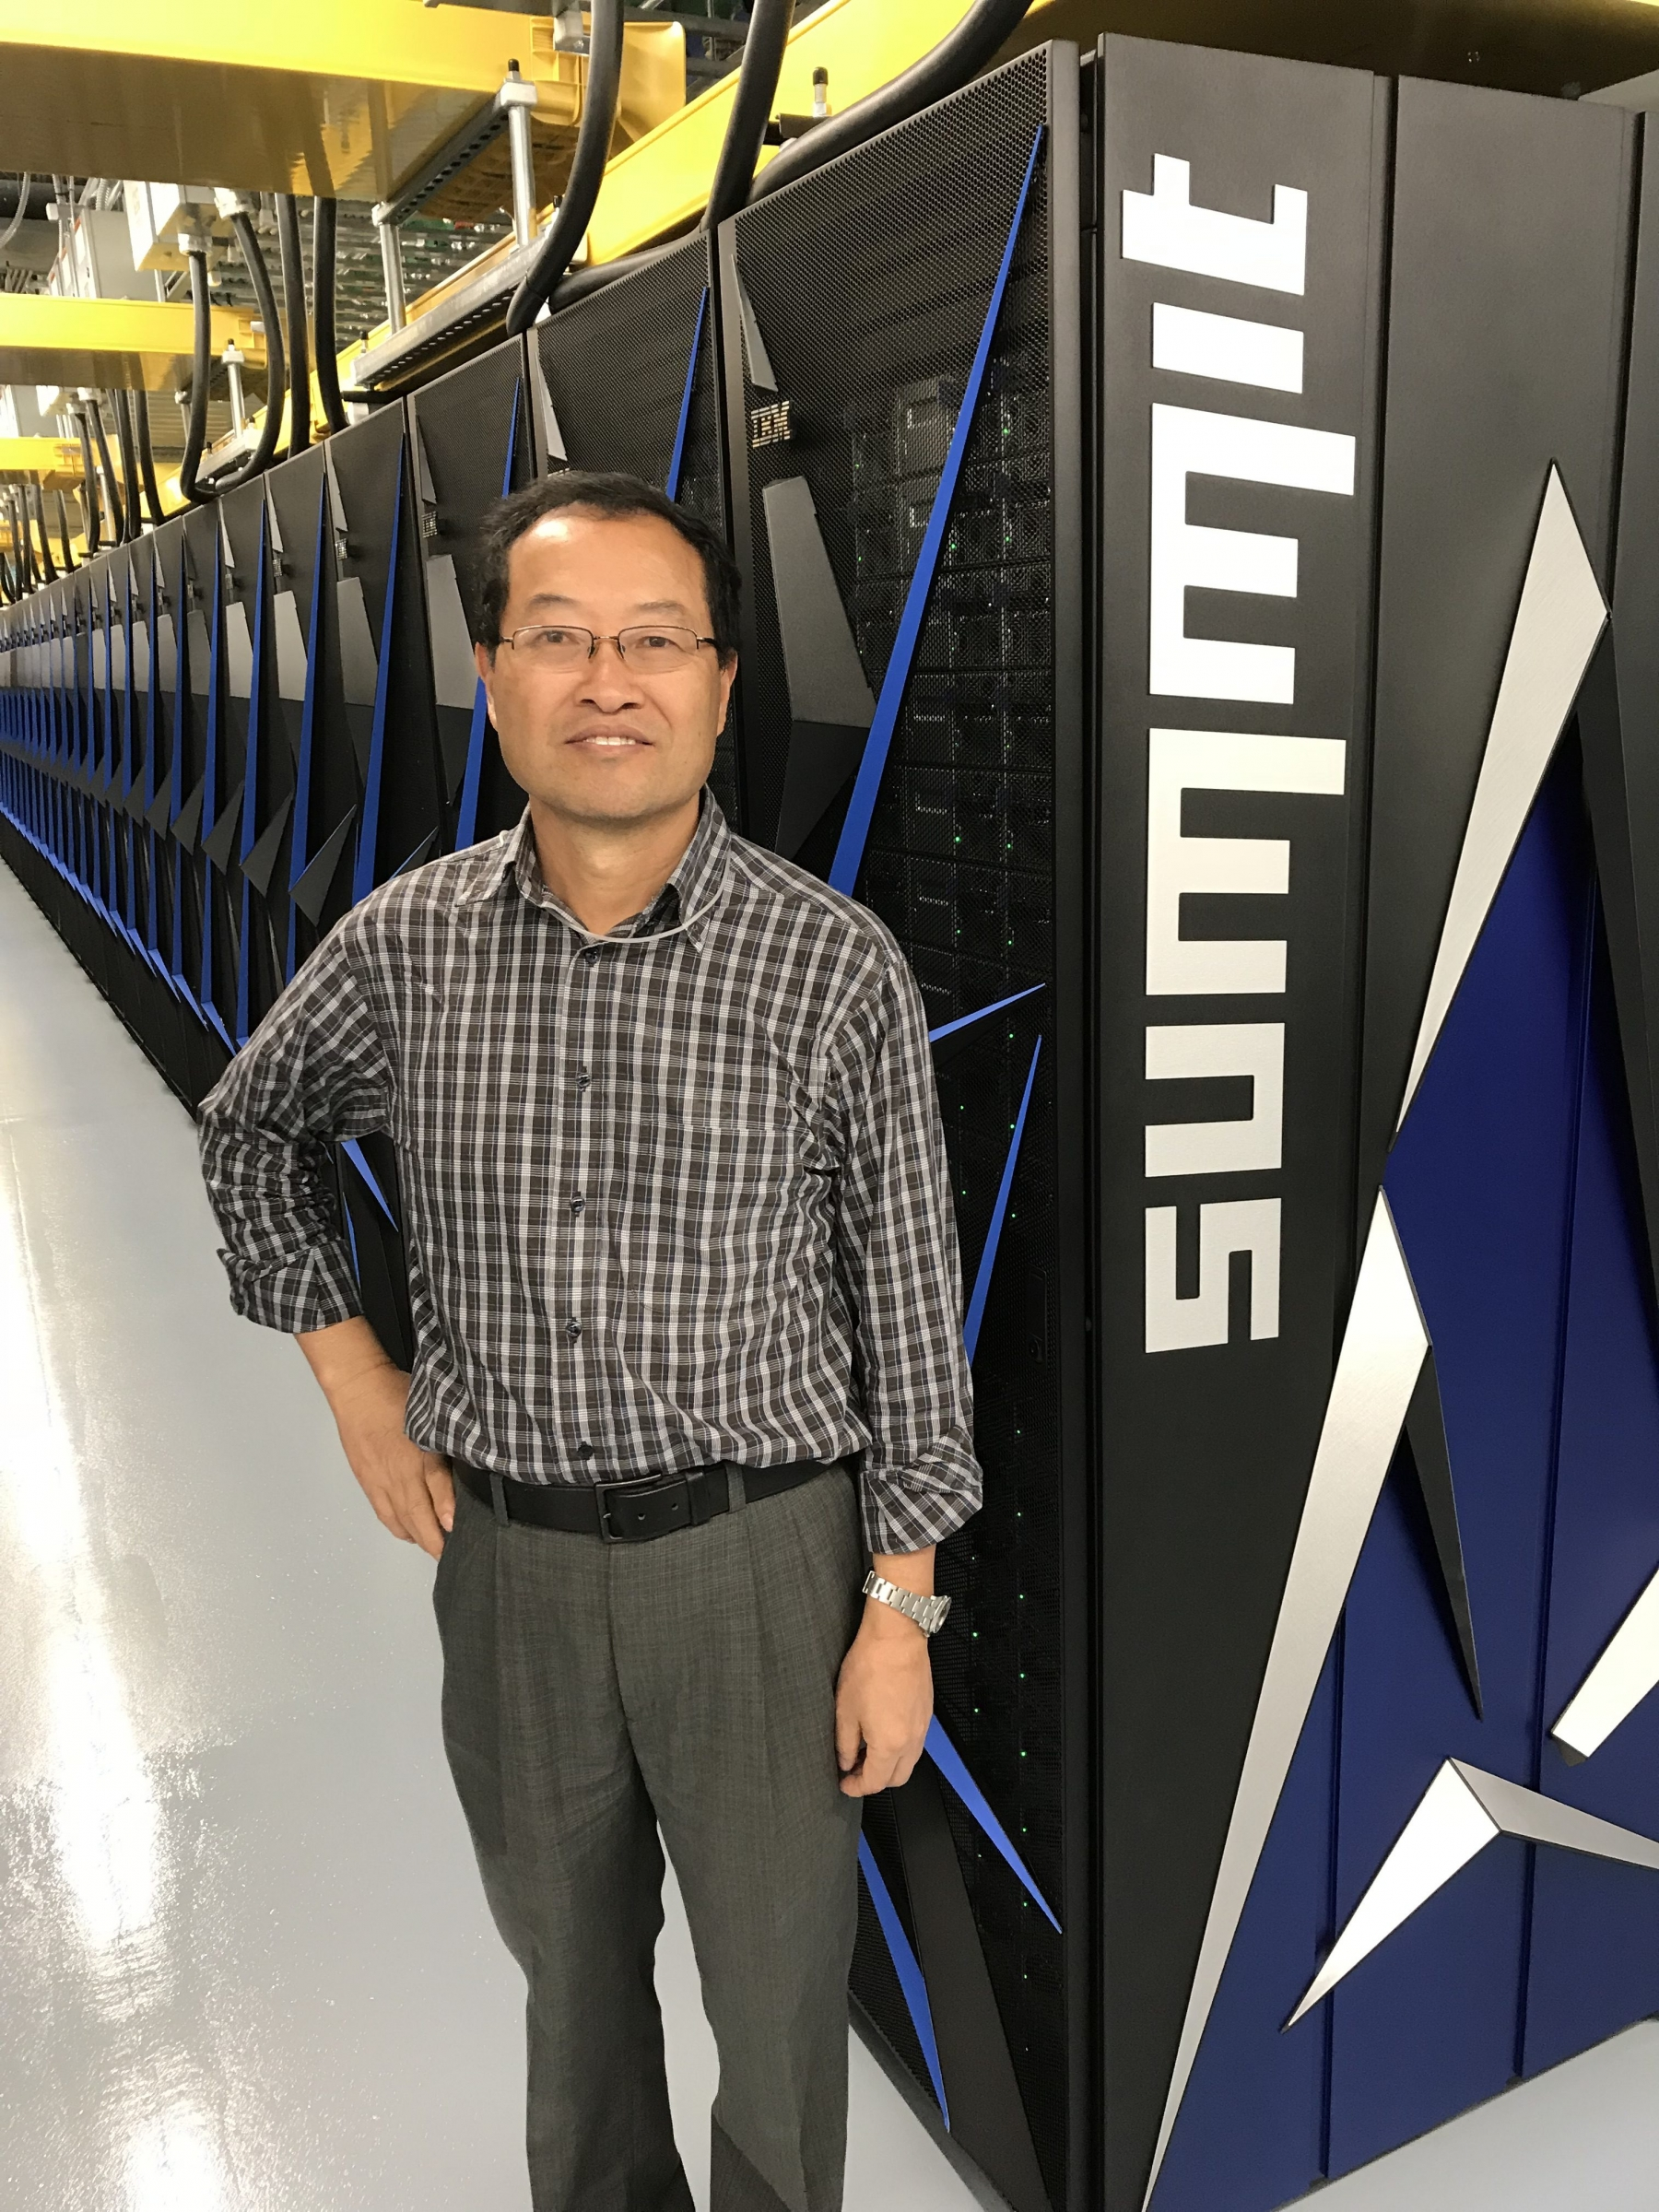 Picture of Yiqi Luo with supercomputer